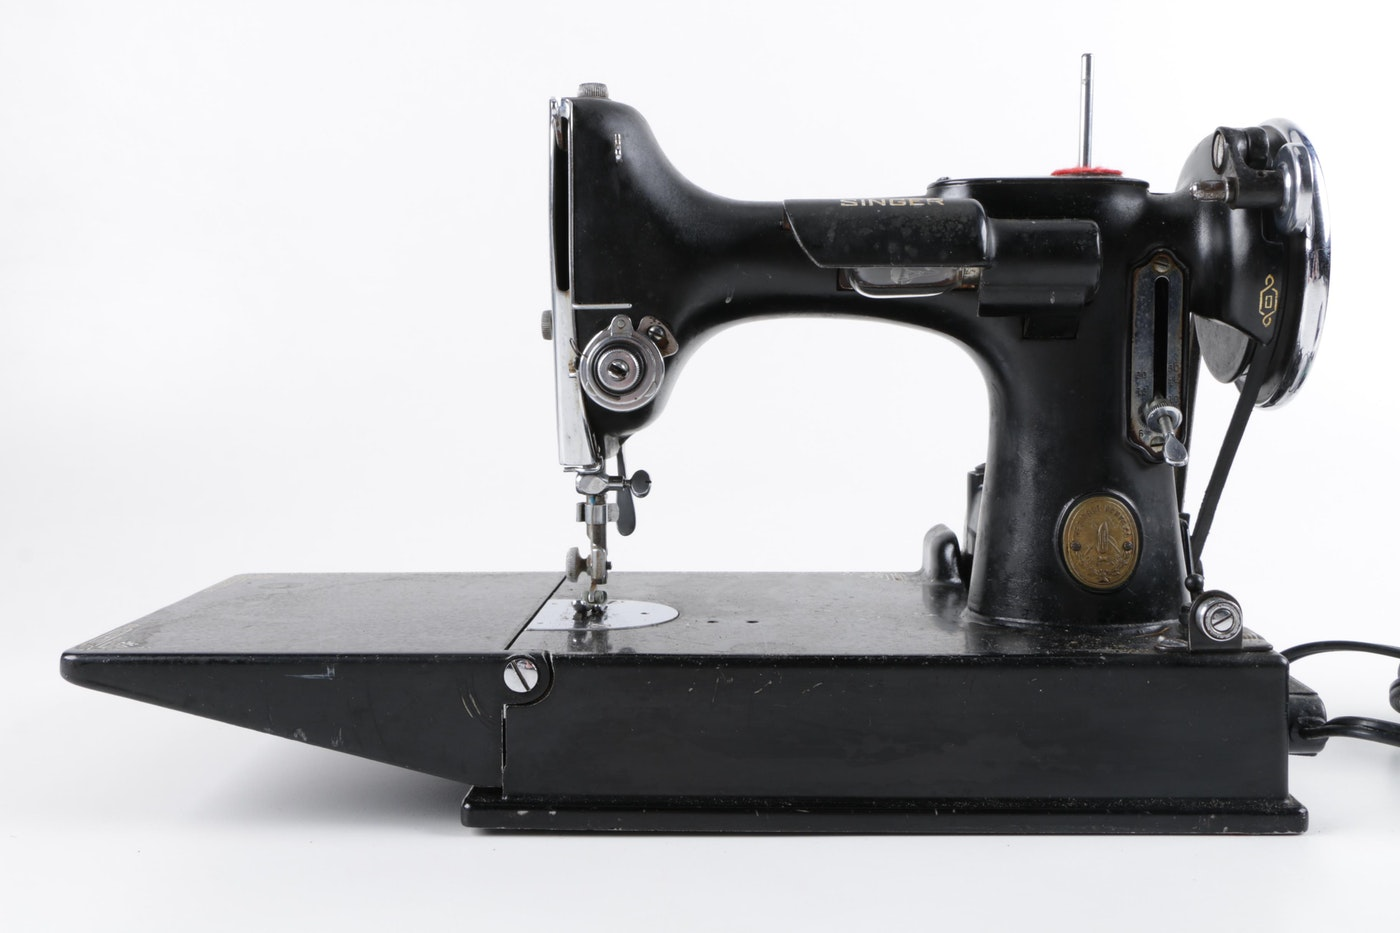 Vintage Singer Portable Sewing Machine | EBTH